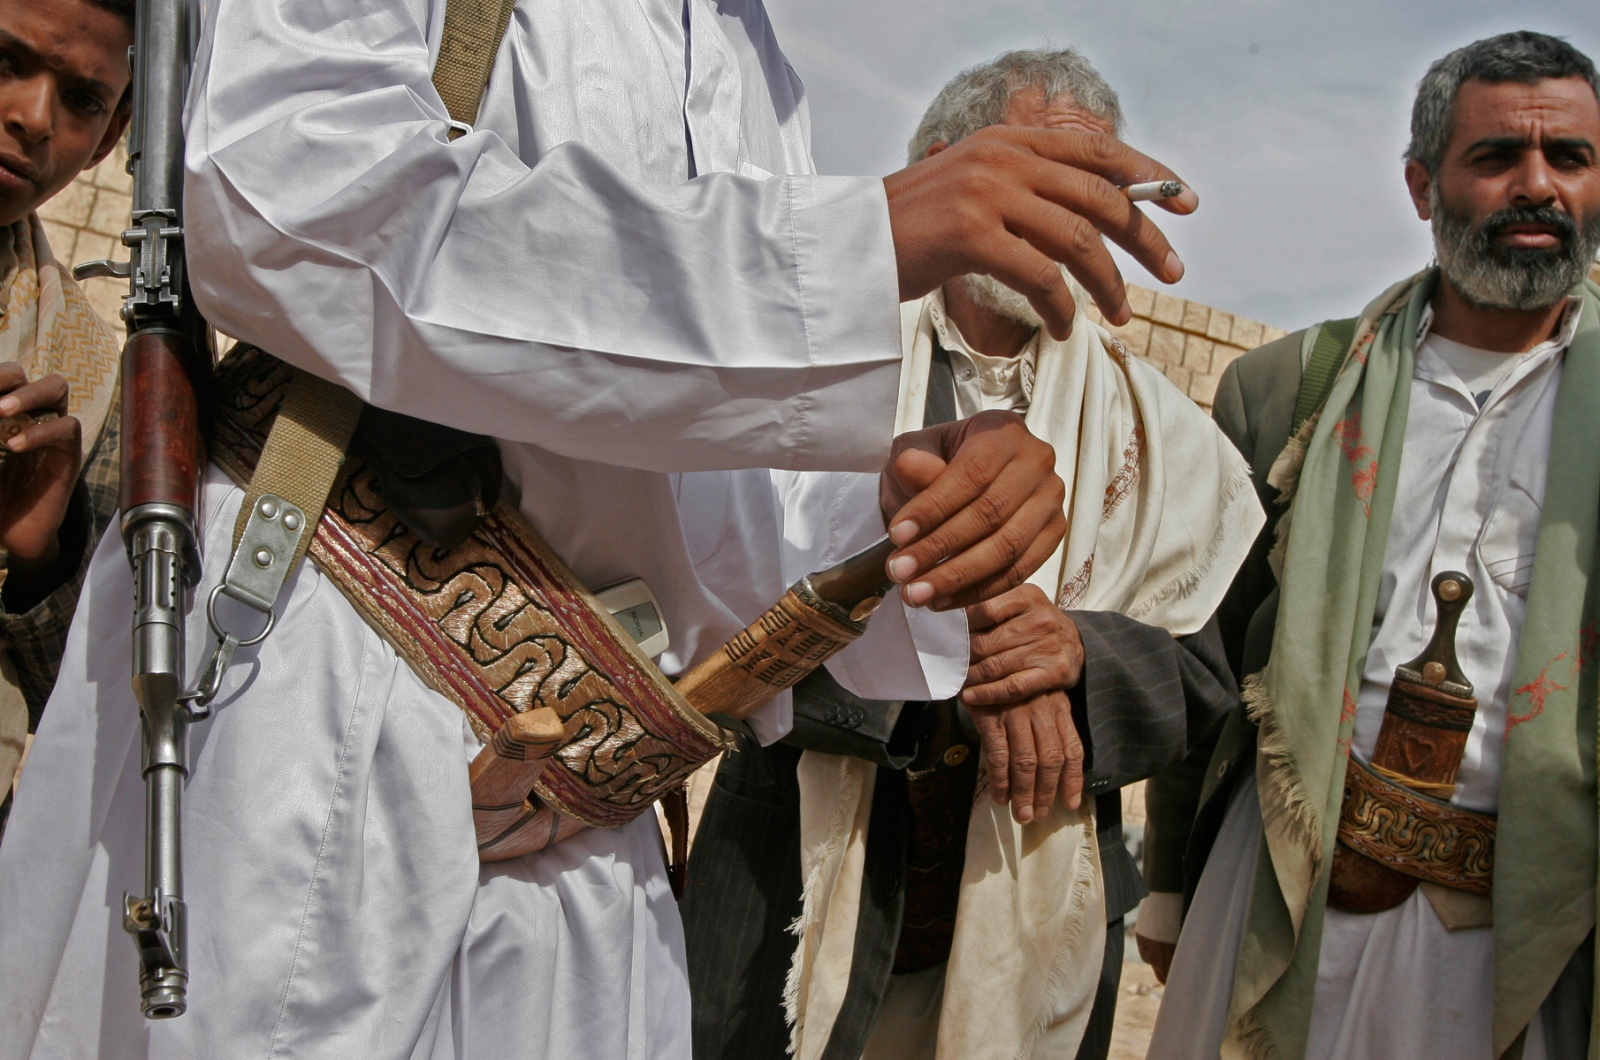 Sheik Rabea carries his gun, knife, and cell phone as he travels through Al Jawf to meet and talk with his tribesmen.